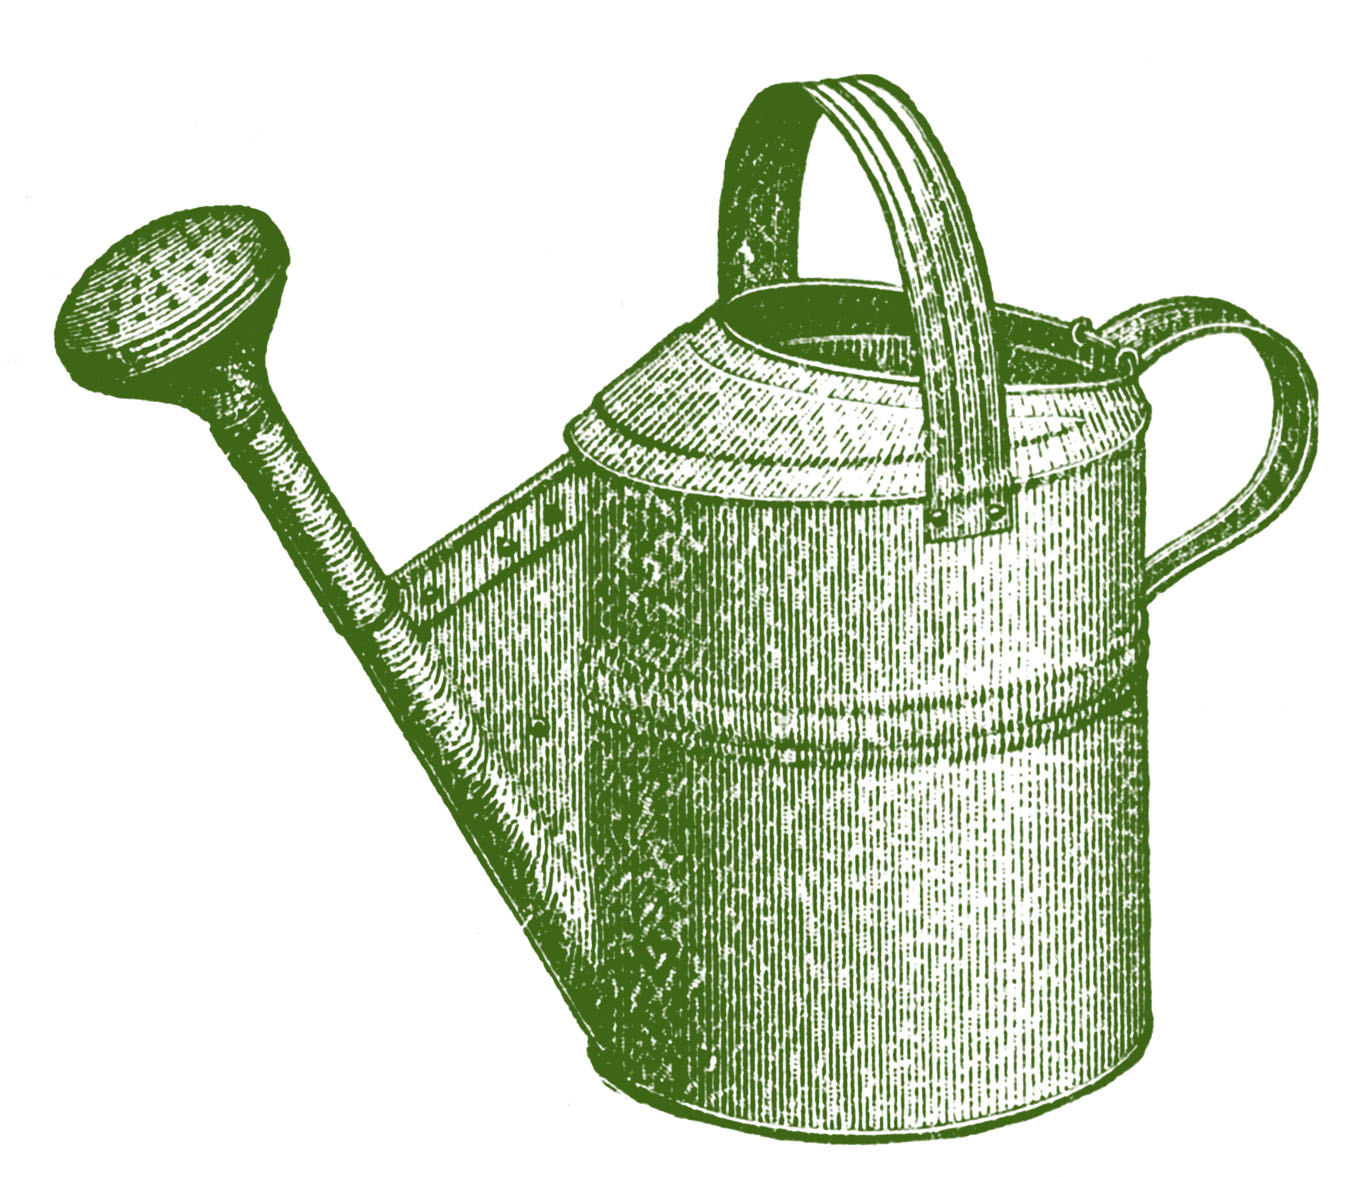 Vintage Garden Clip Art - Classic Watering Can - The Graphics Fairy: thegraphicsfairy.com/vintage-garden-clip-art-classic-watering-can